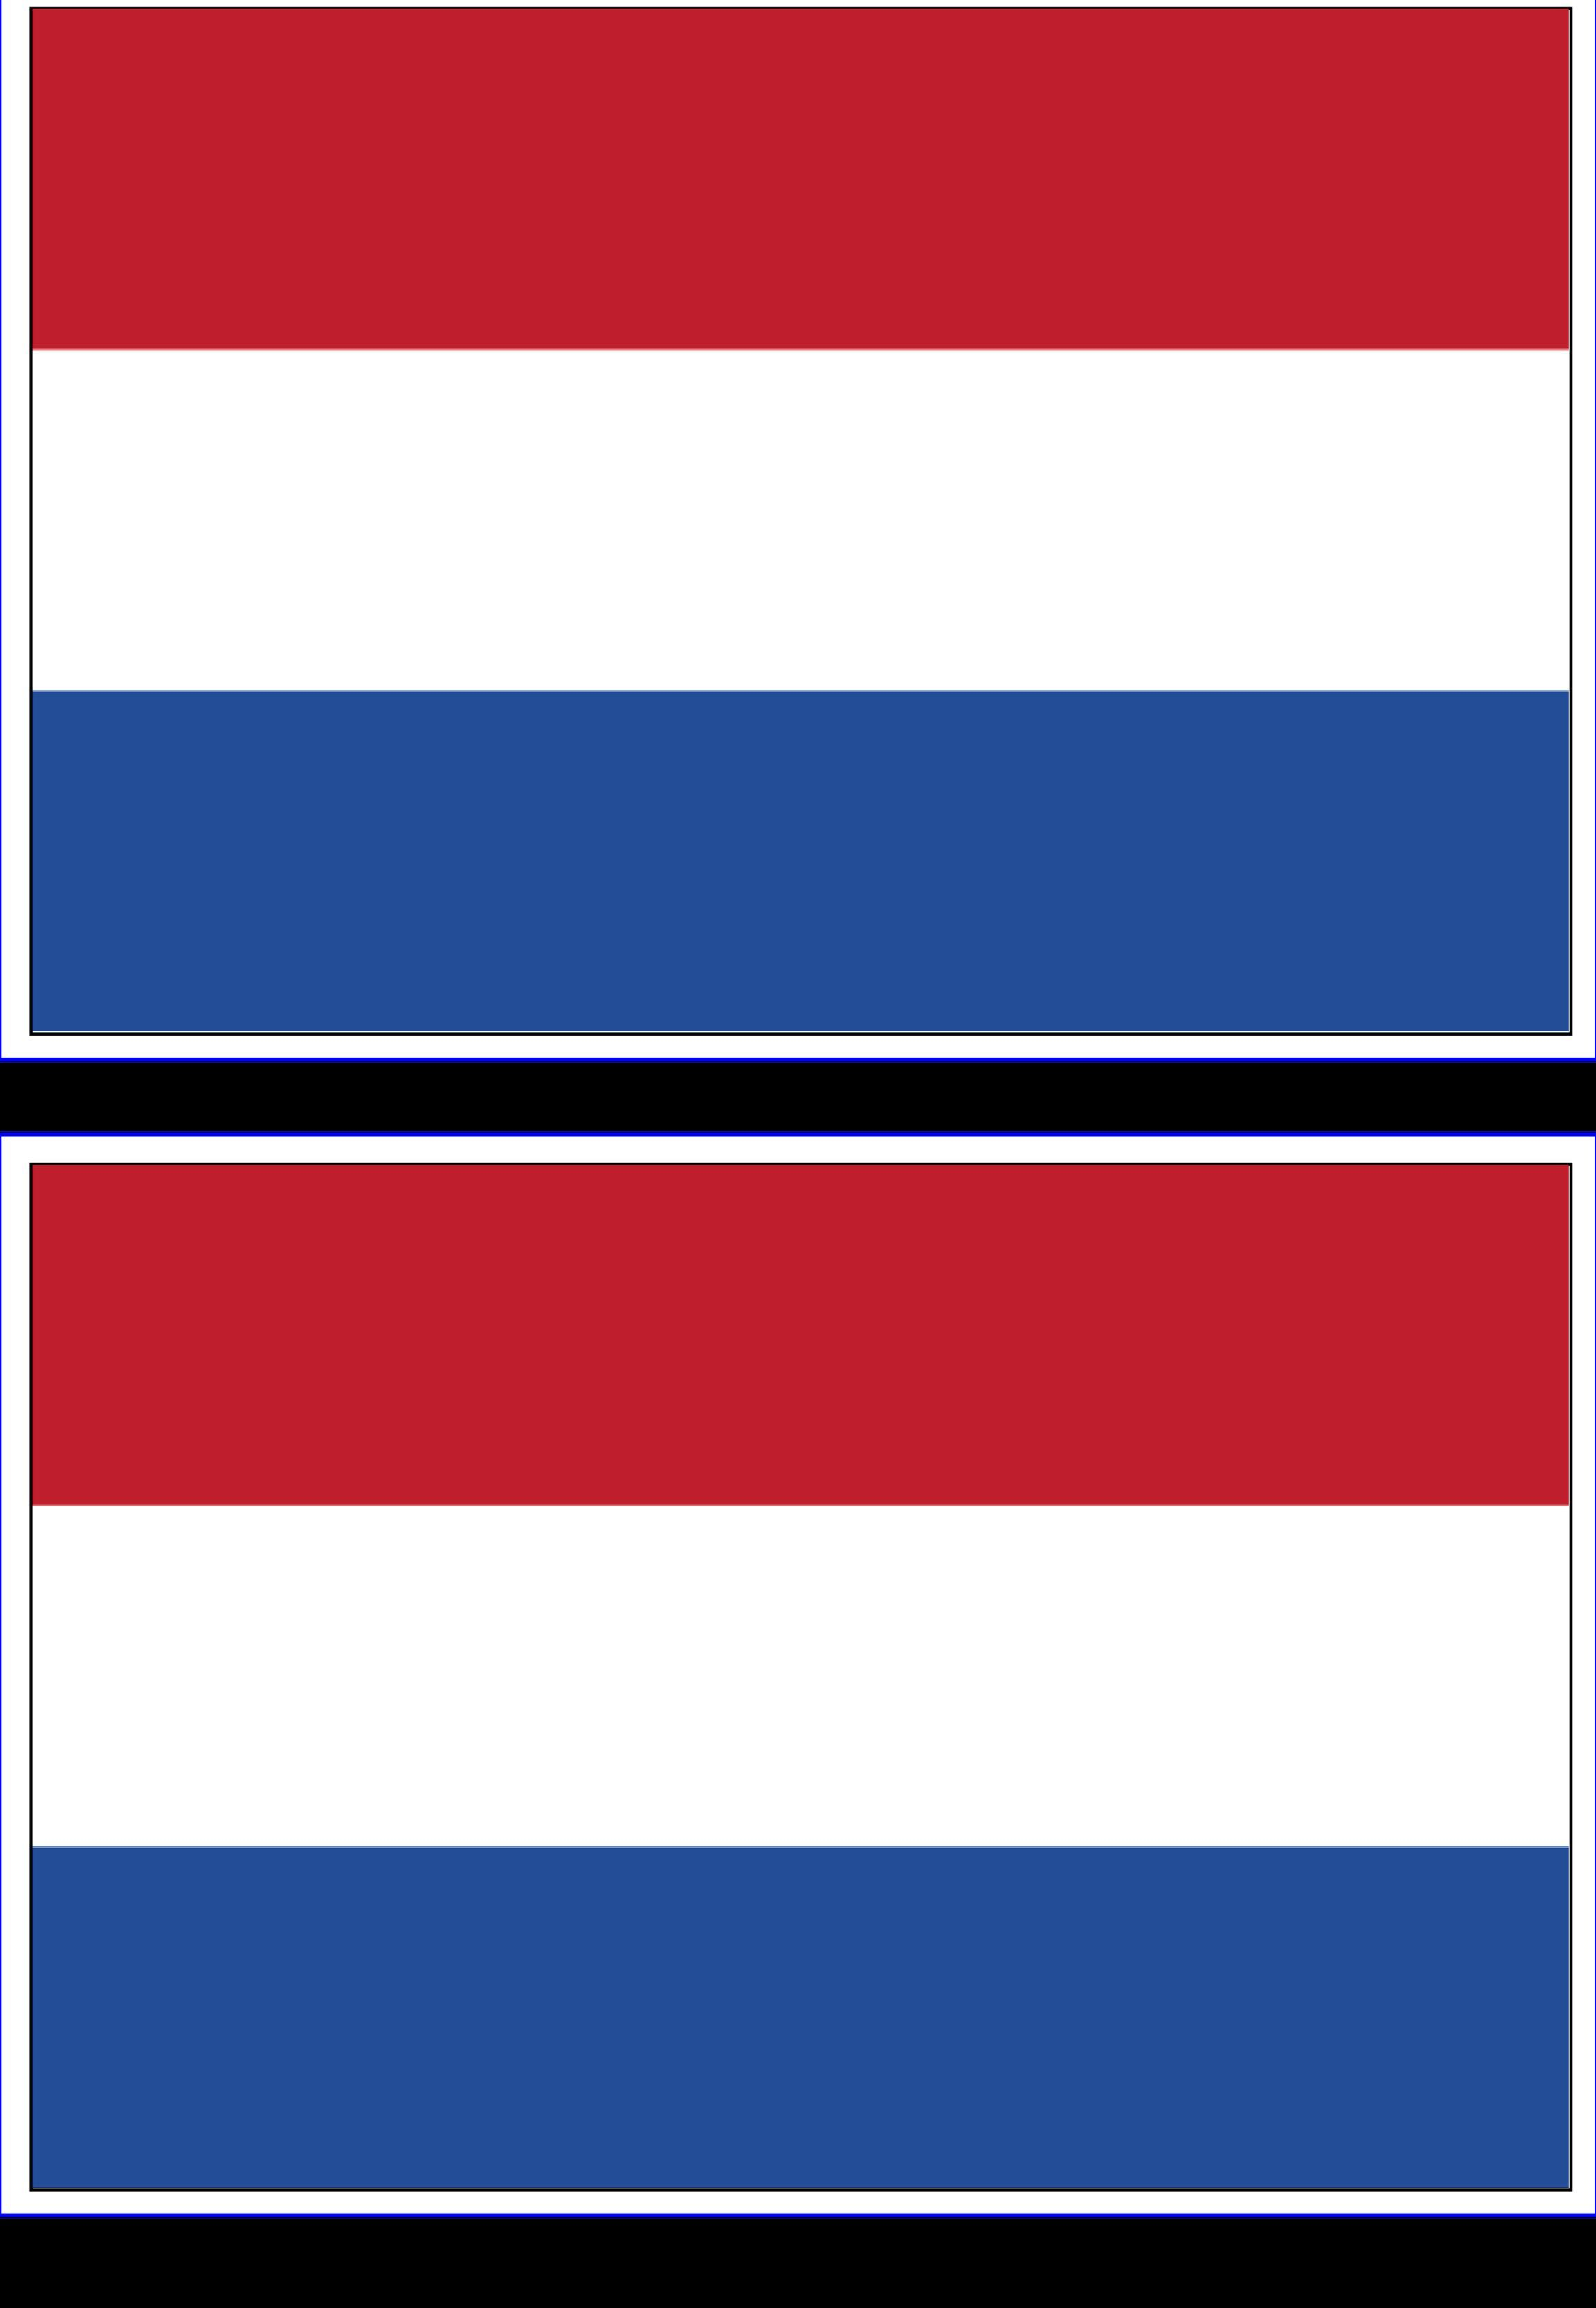 Netherlands Flag Download This Free Printable Netherlands Template A4 Flag A5 Flag 8 And 21 Flags On One A4page In 2020 Netherlands Flag Your Design Free Printables